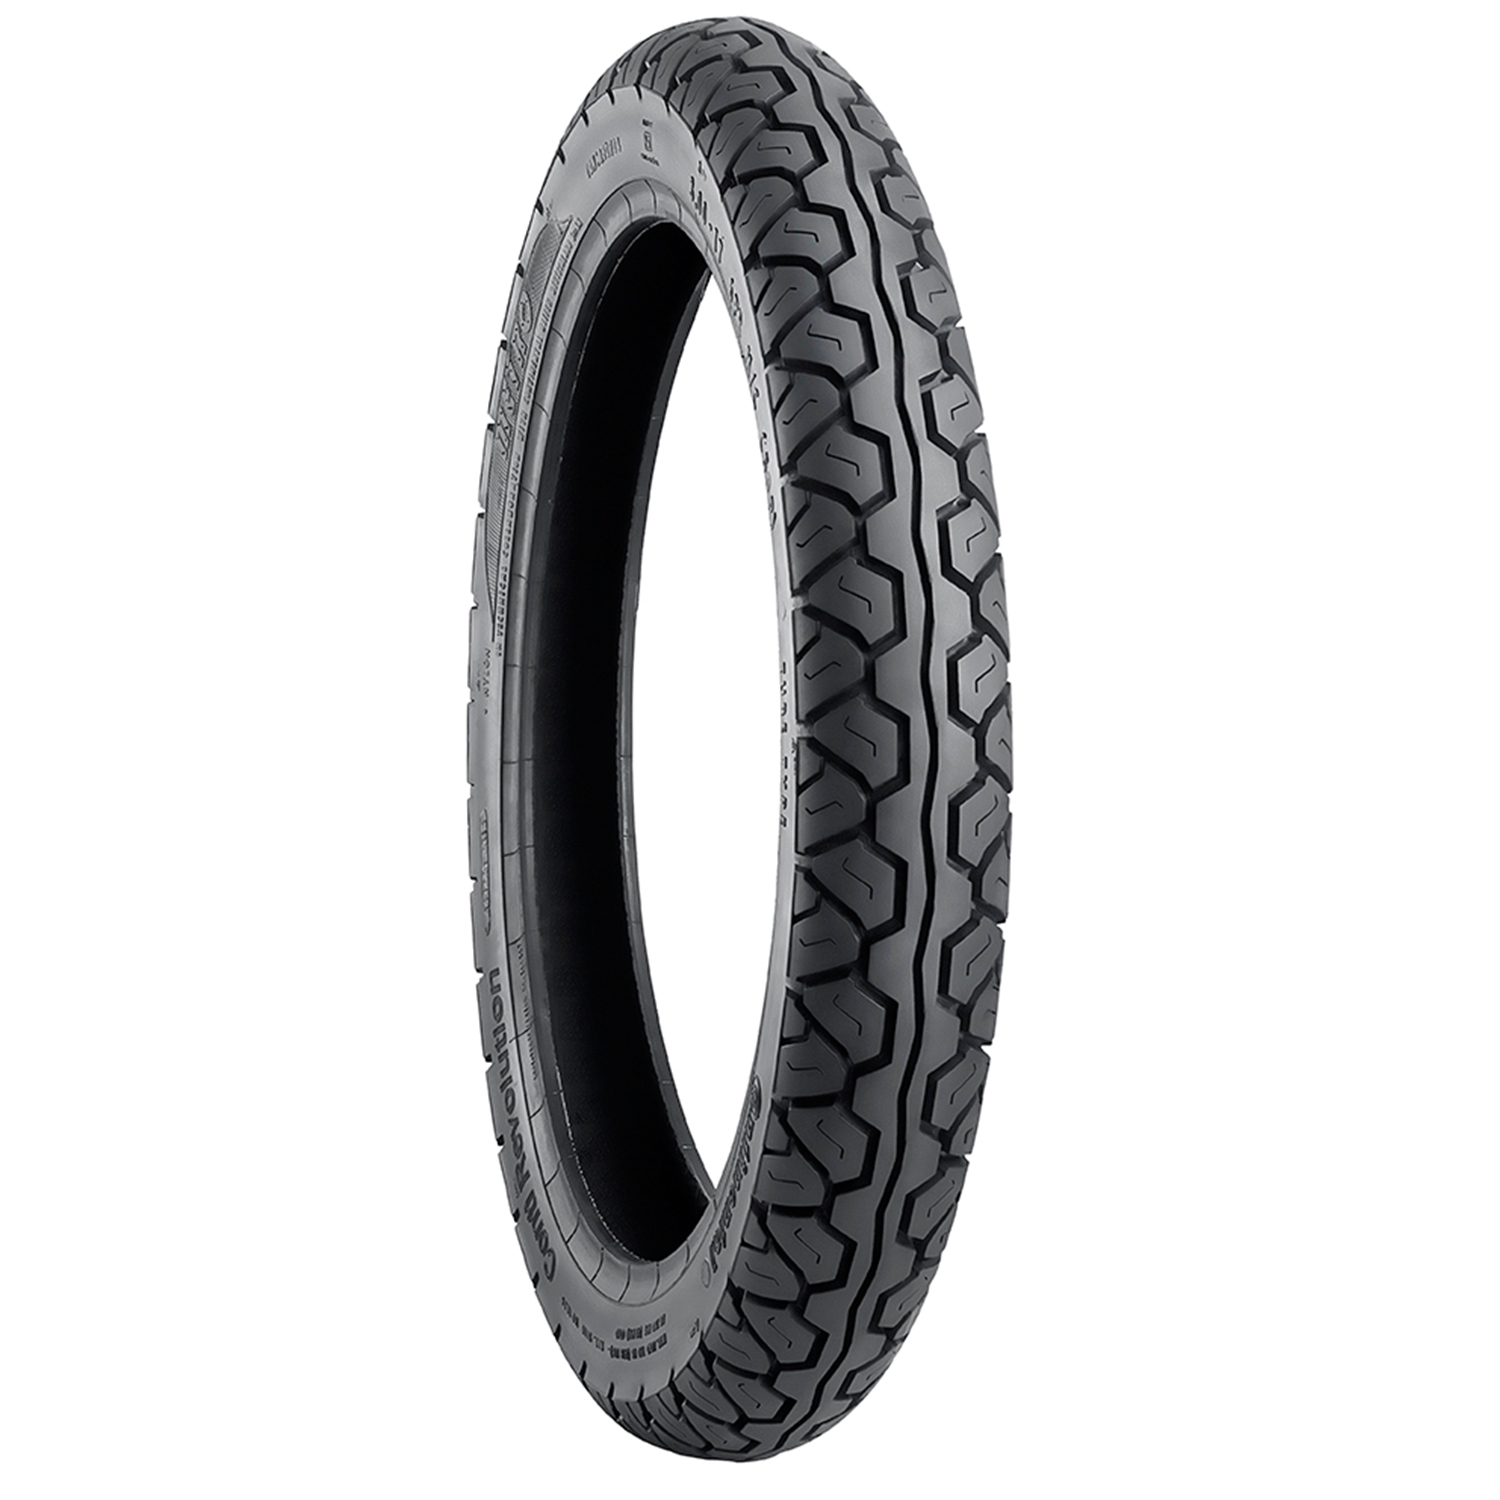 Metro CONTI REVOLUTION 3.00 17 Requires Tube Rear Two-Wheeler Tyre